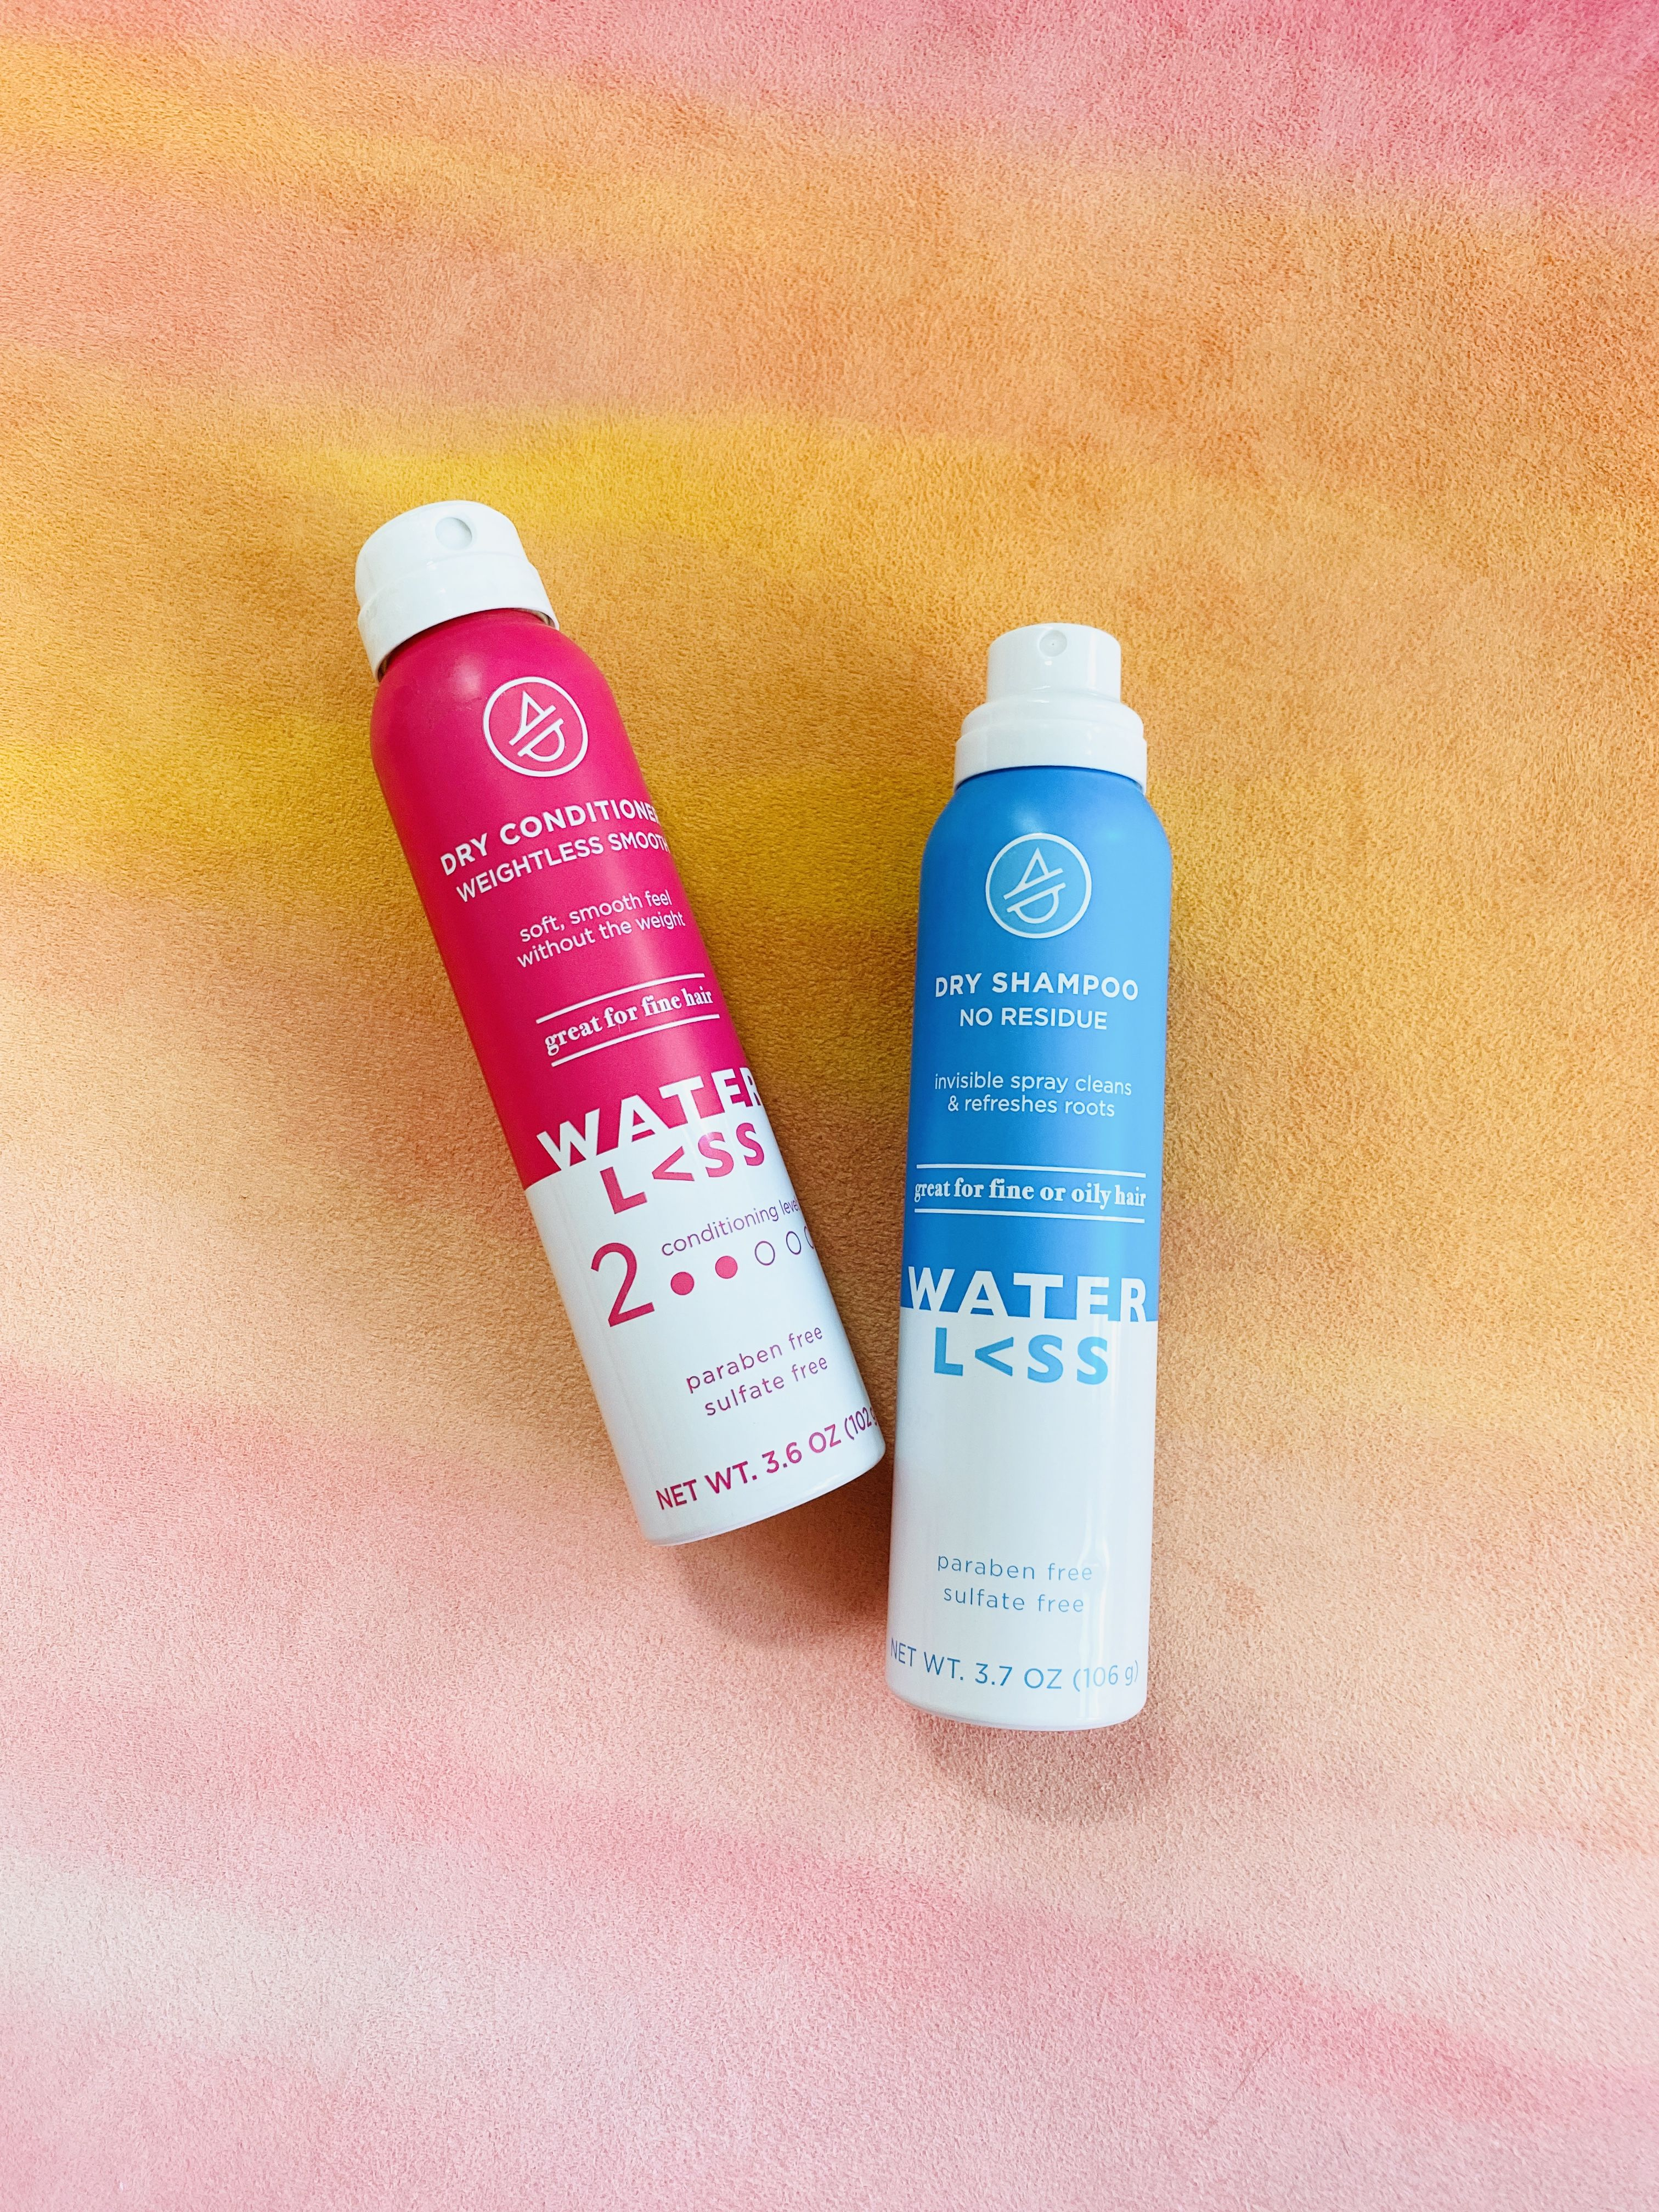 Dry Shampoo No Residue Dry Conditioner Weightless Smooth Dry Conditioner Dry Shampoo Paraben Free Products